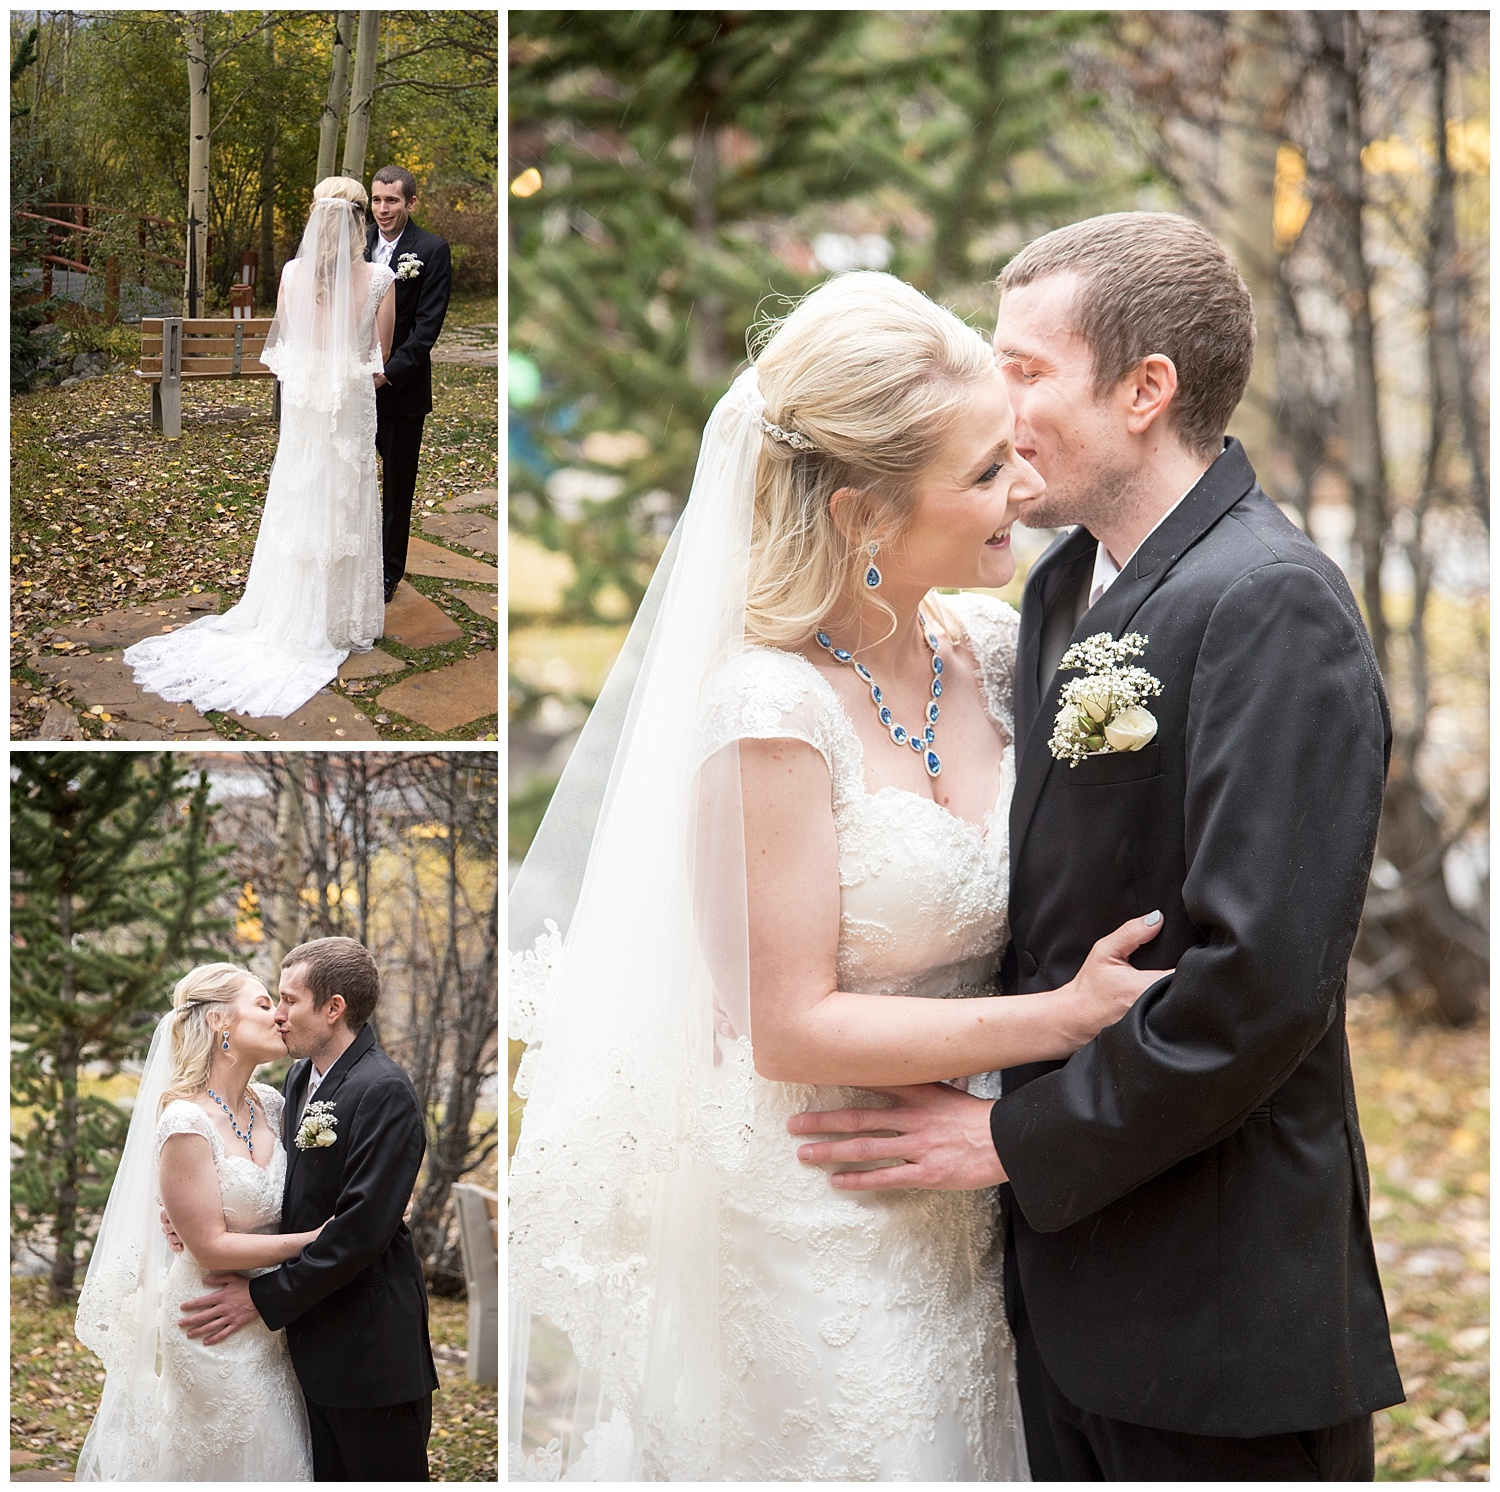 Bride & Groom First Look | Chris & Destiny's Destination Wedding | Breckenridge Wedding Photographer | Colorado Farm Wedding Photographer | Apollo Fields Wedding Photojournalism